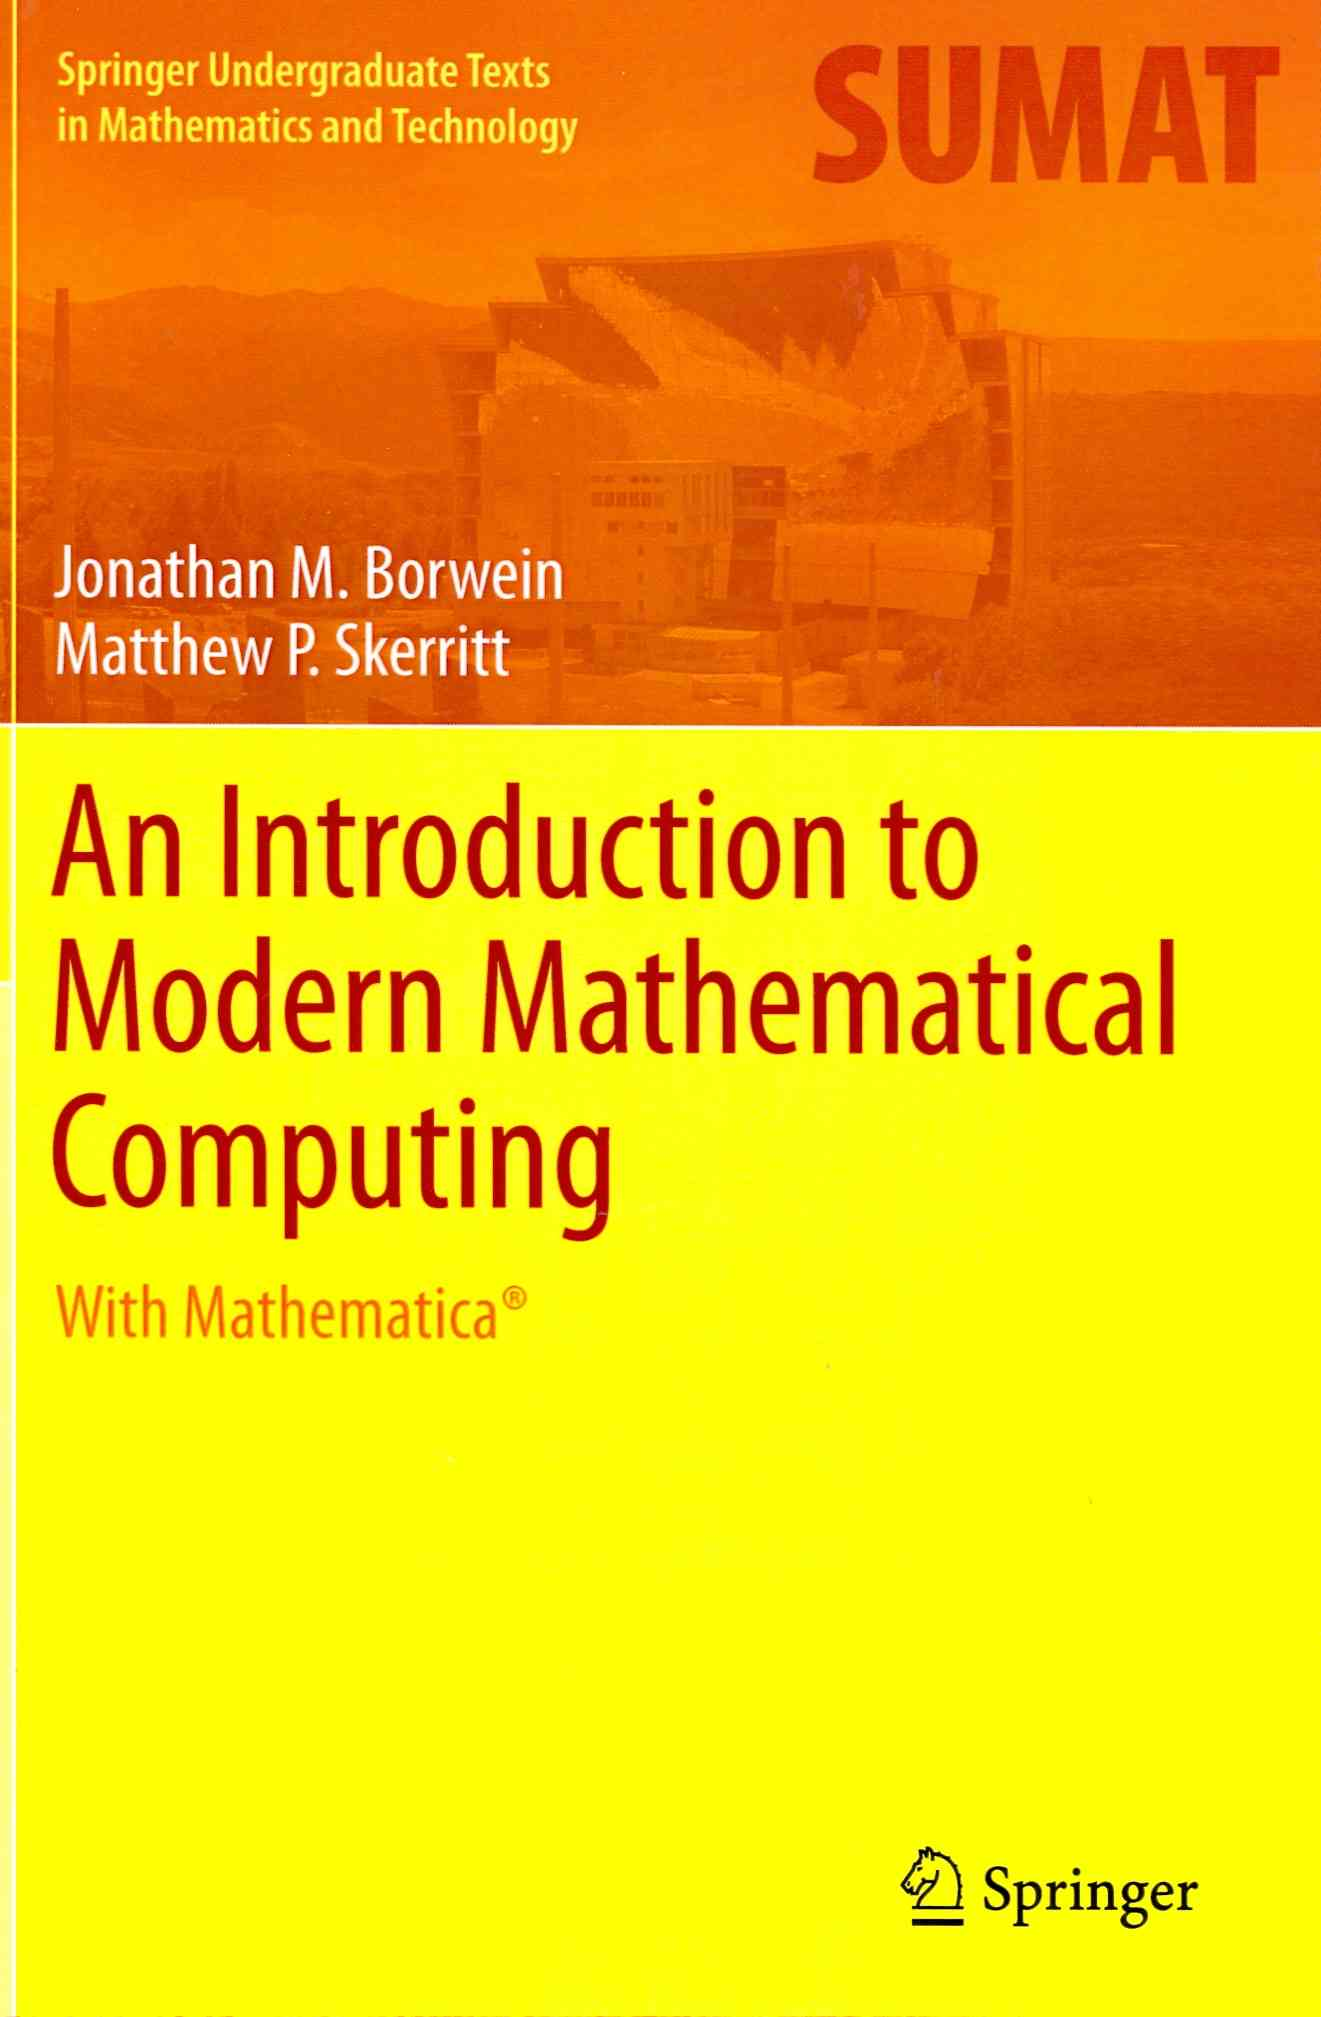 An Introduction to Modern Mathematical Computing By Borwein, Jonathan M./ Skerritt, Matthew P.